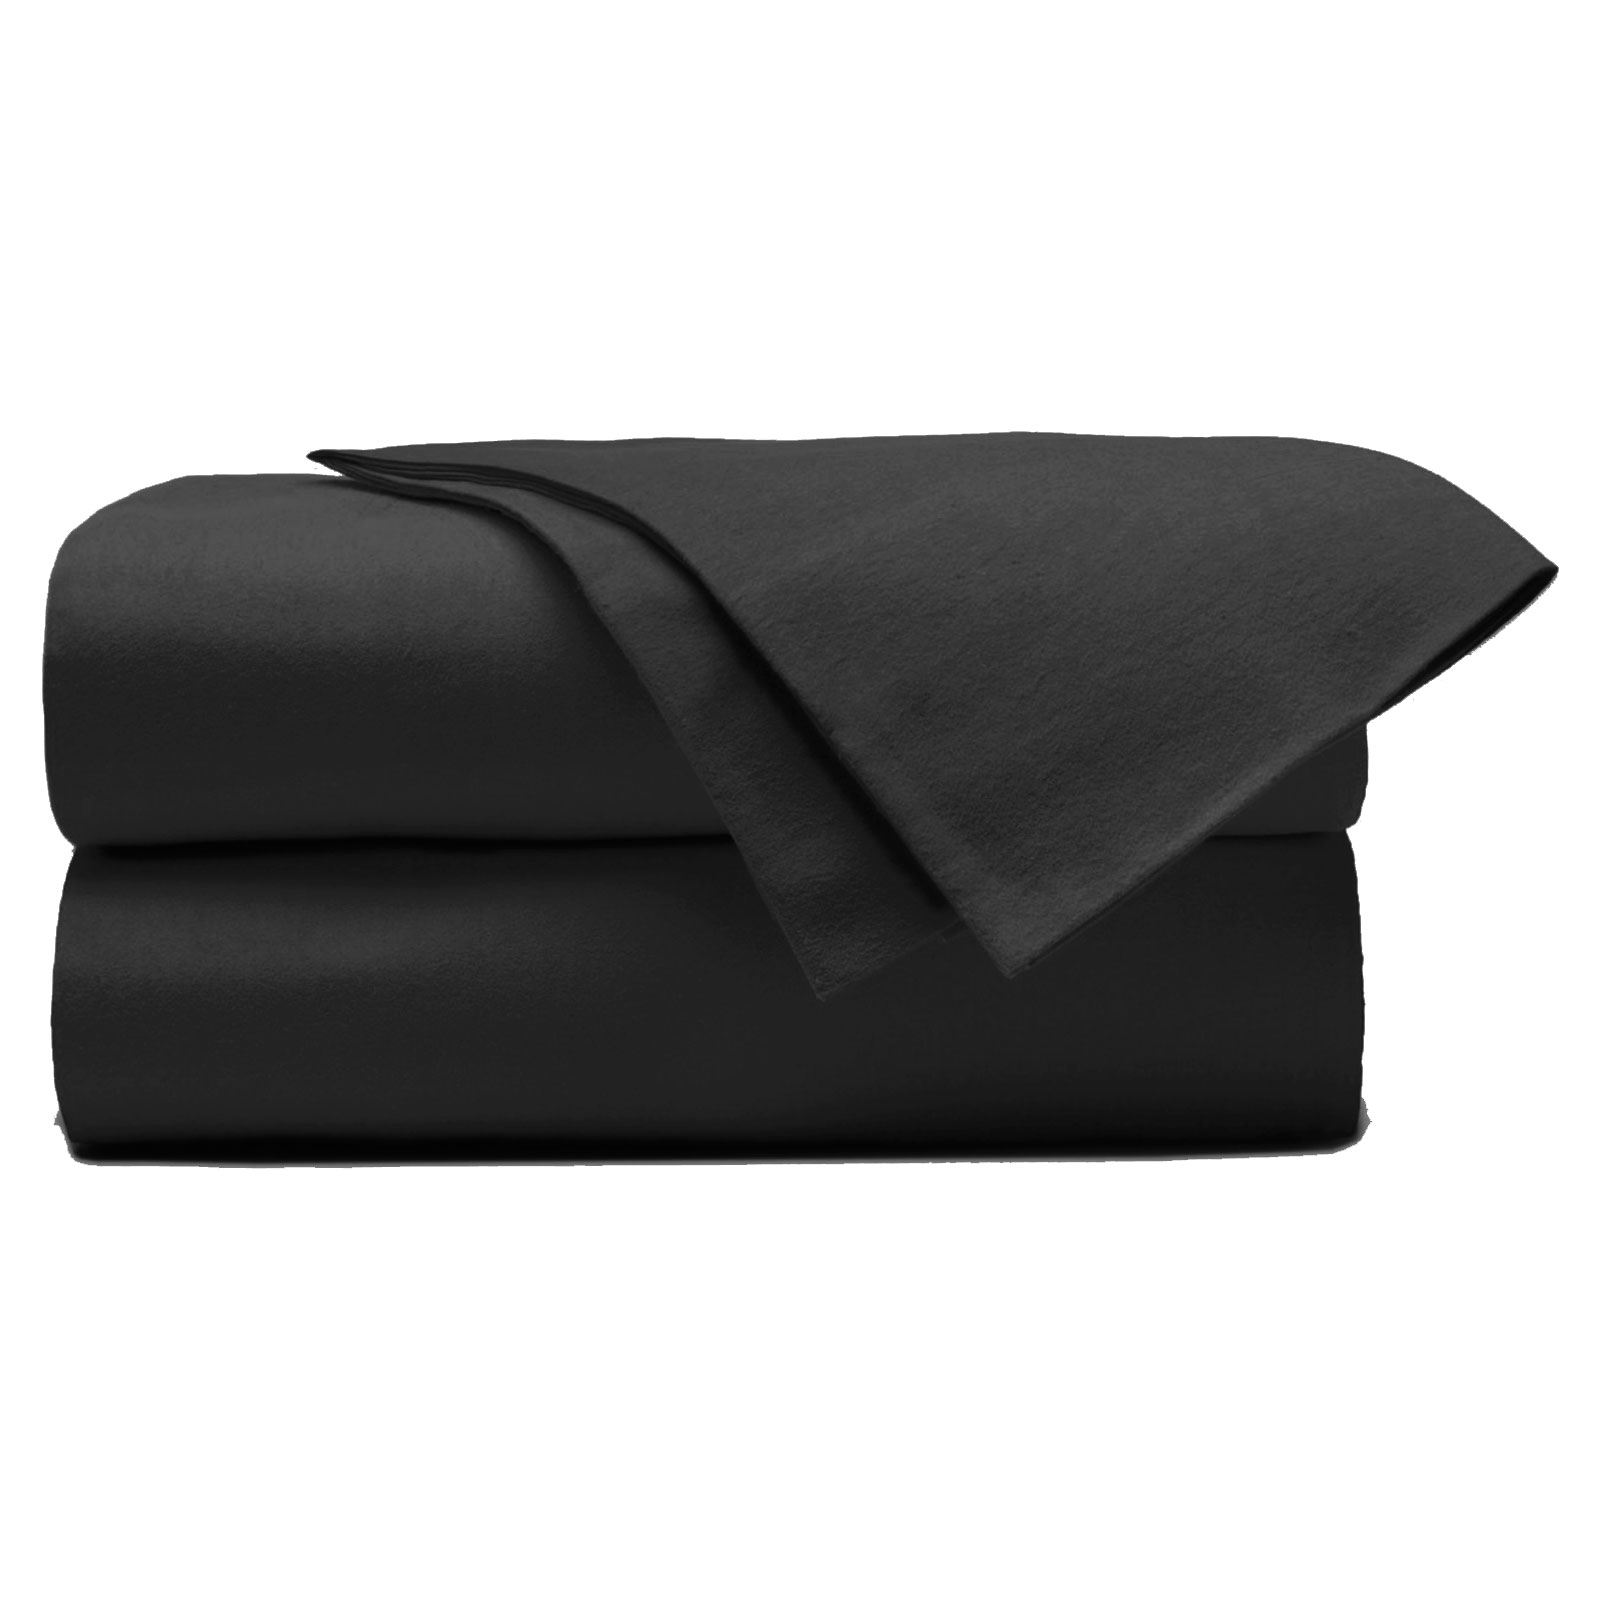 flannelette duvet sets dyed bed fitted sheet pillow covers